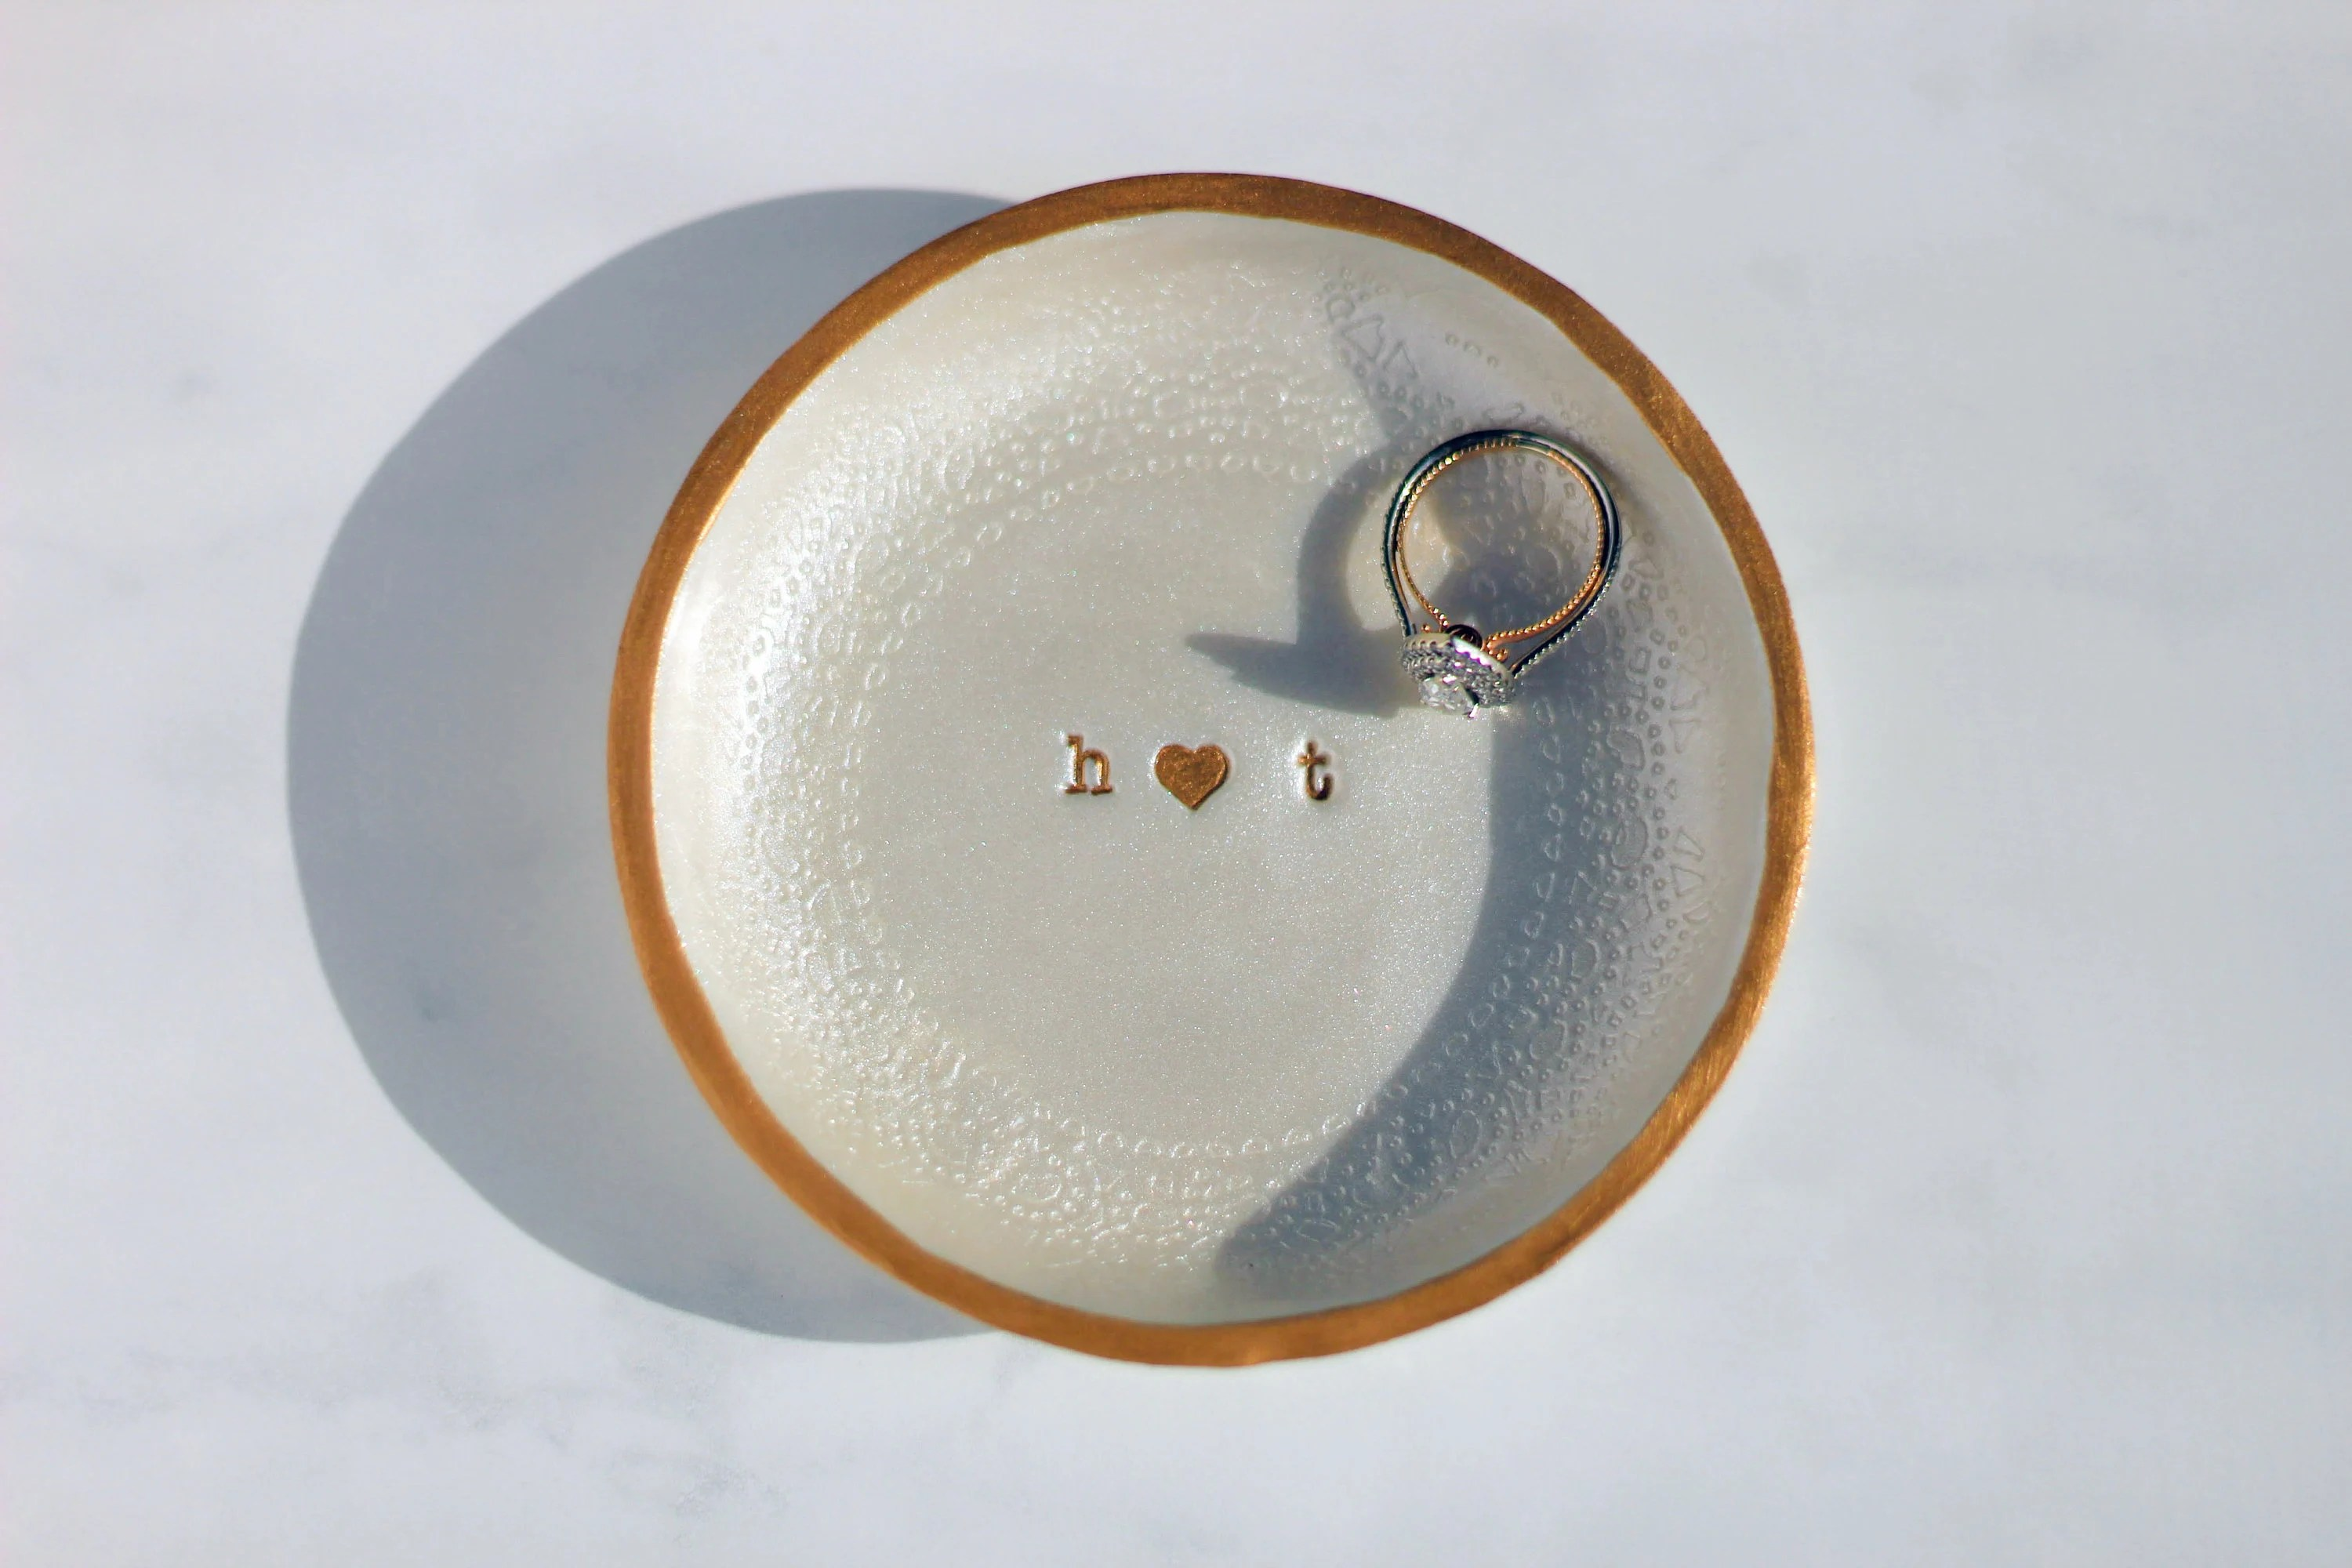 Personalized Metallic Monogram Ring Dish Wedding Ring Dish image 6